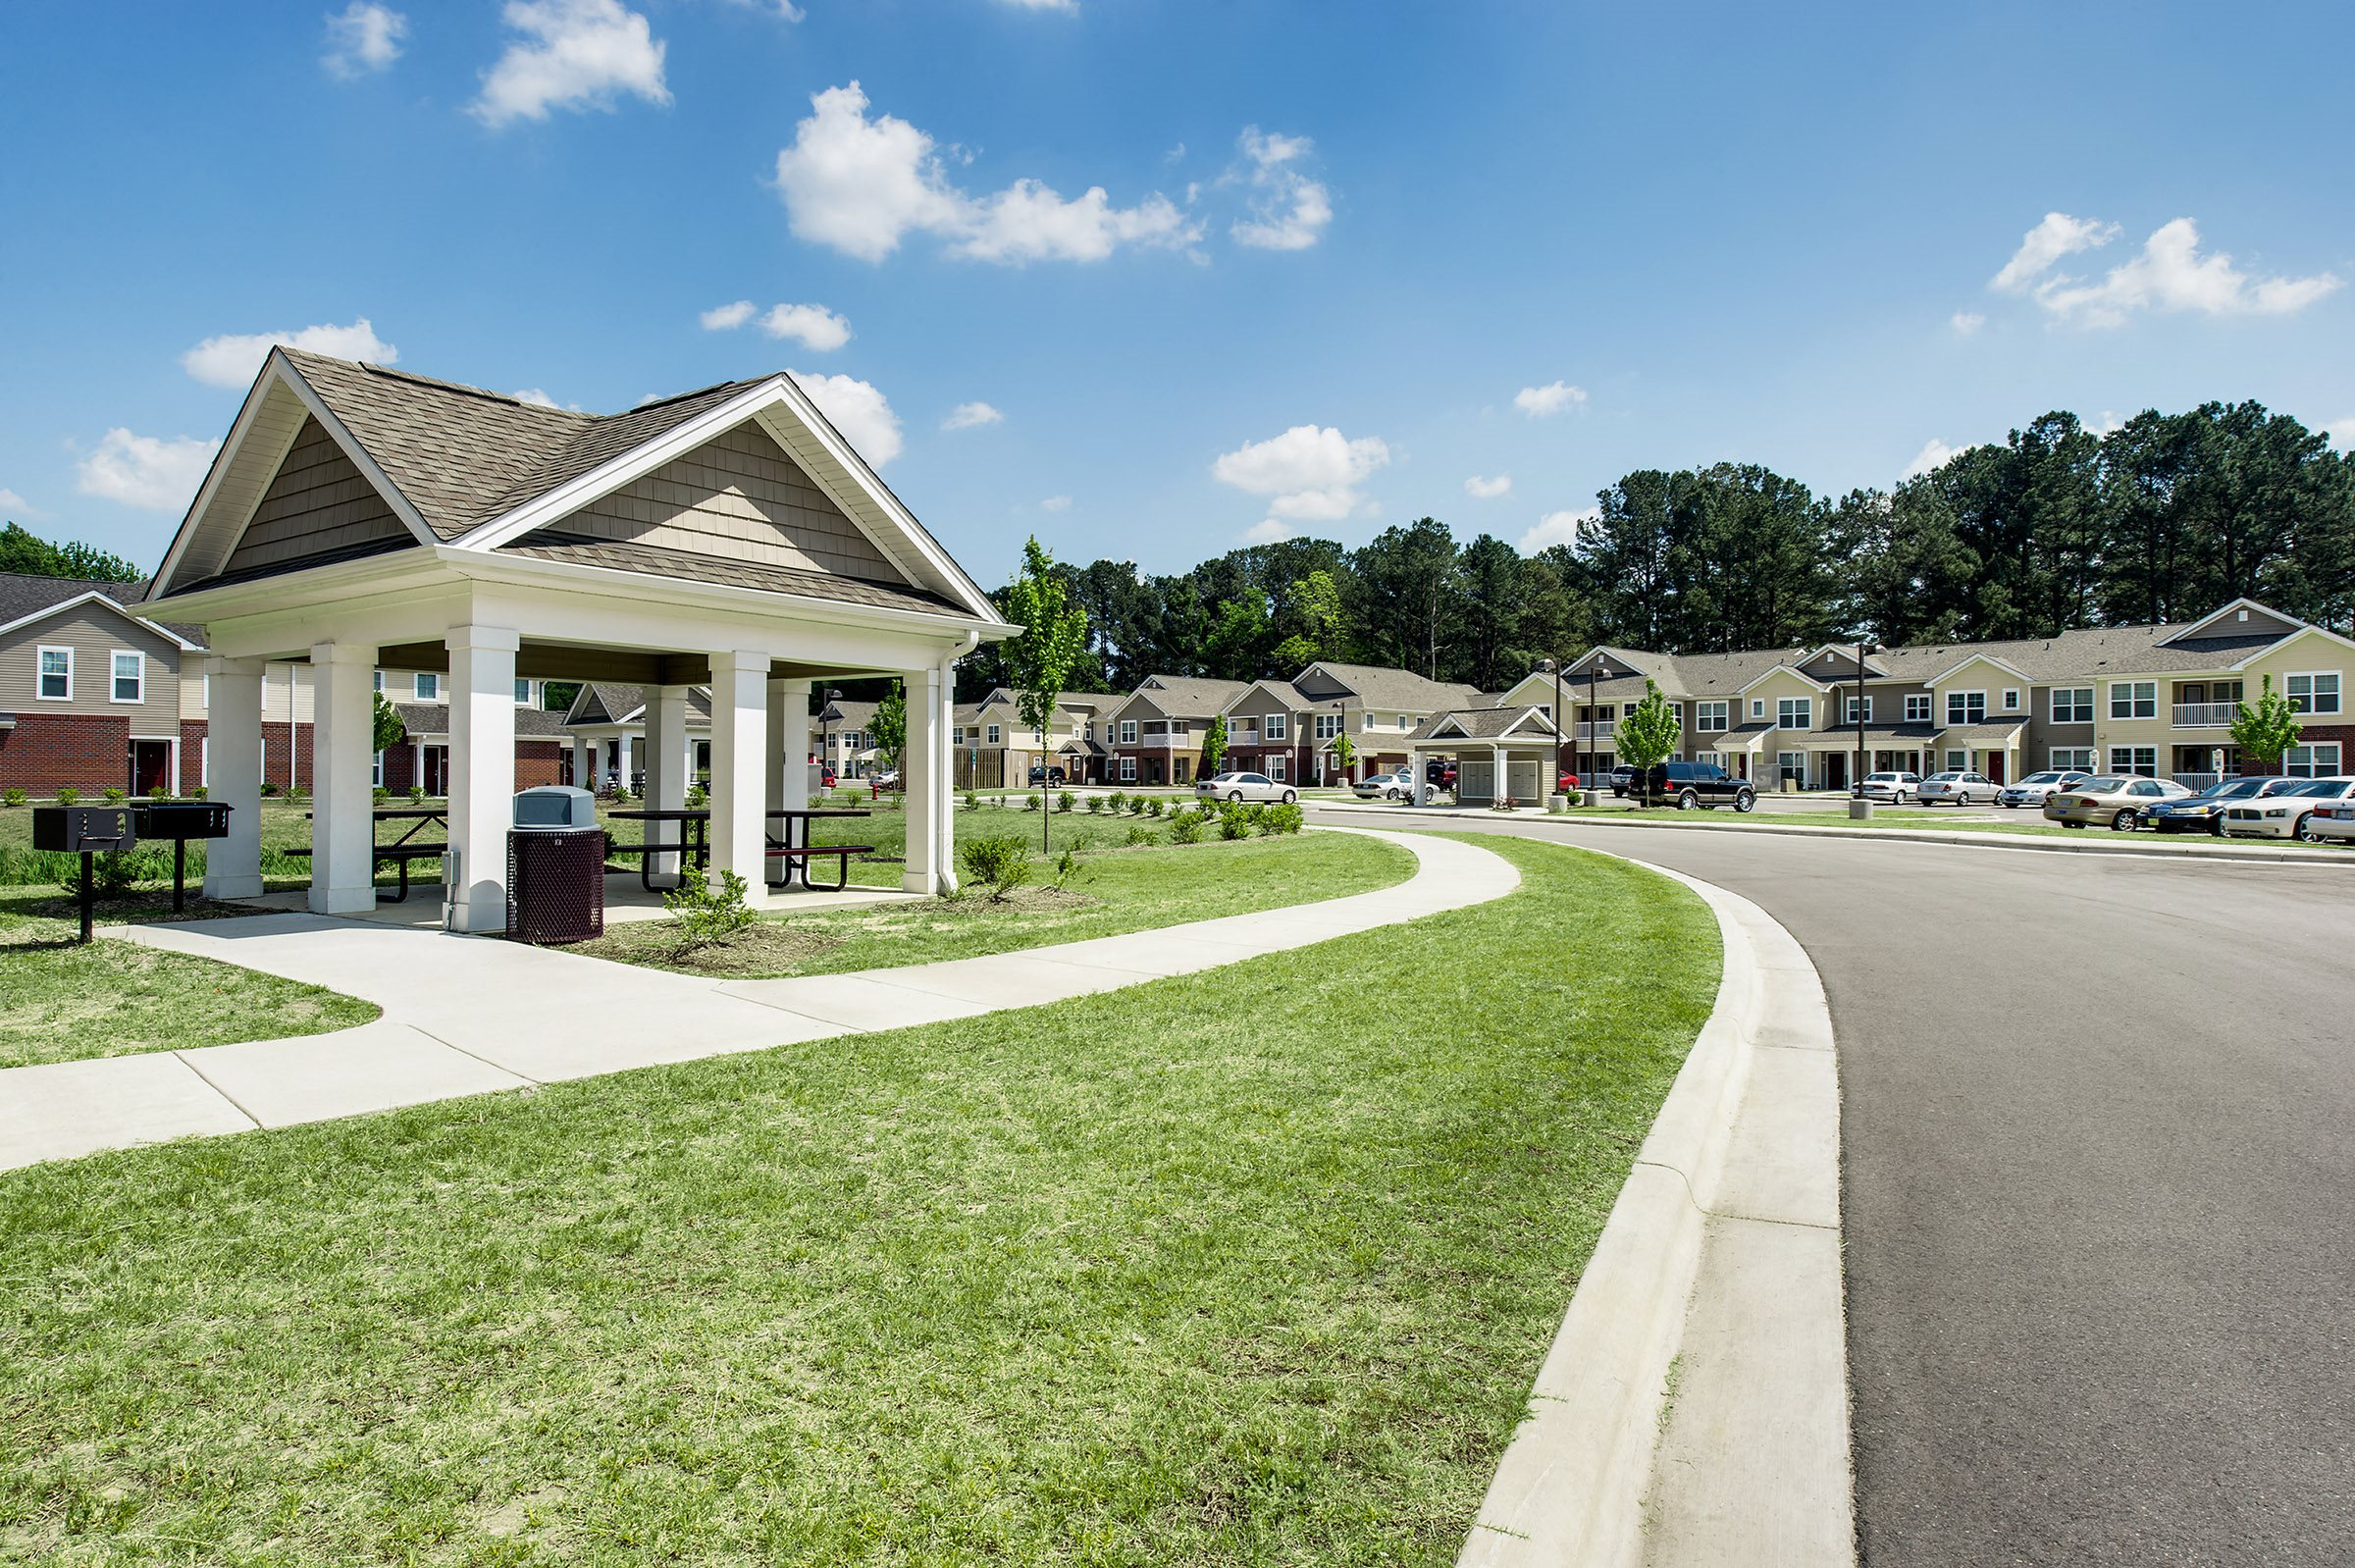 Winslow Pointe Apartments In Greenville Nc